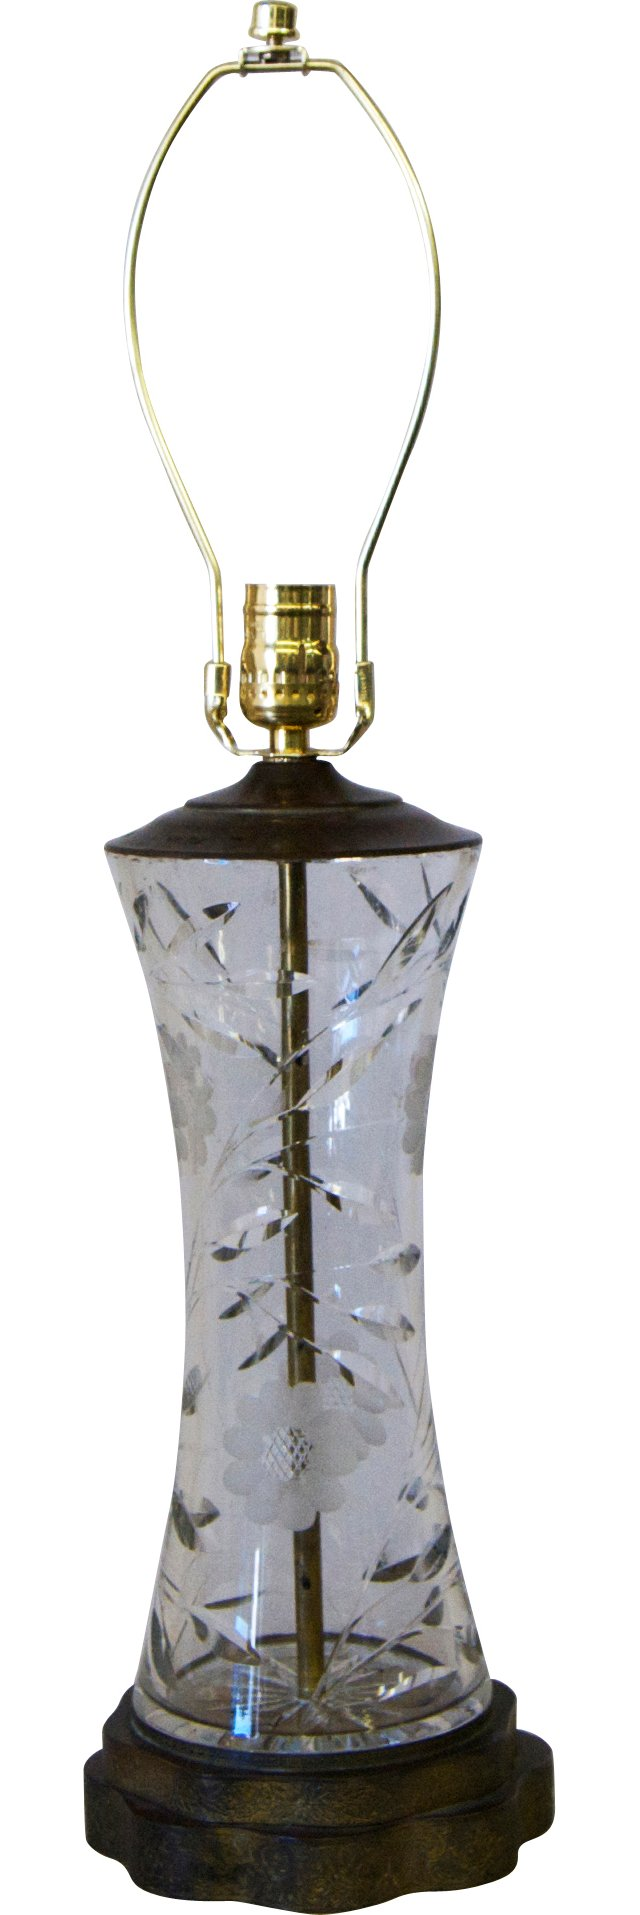 Cut Crystal Lamp